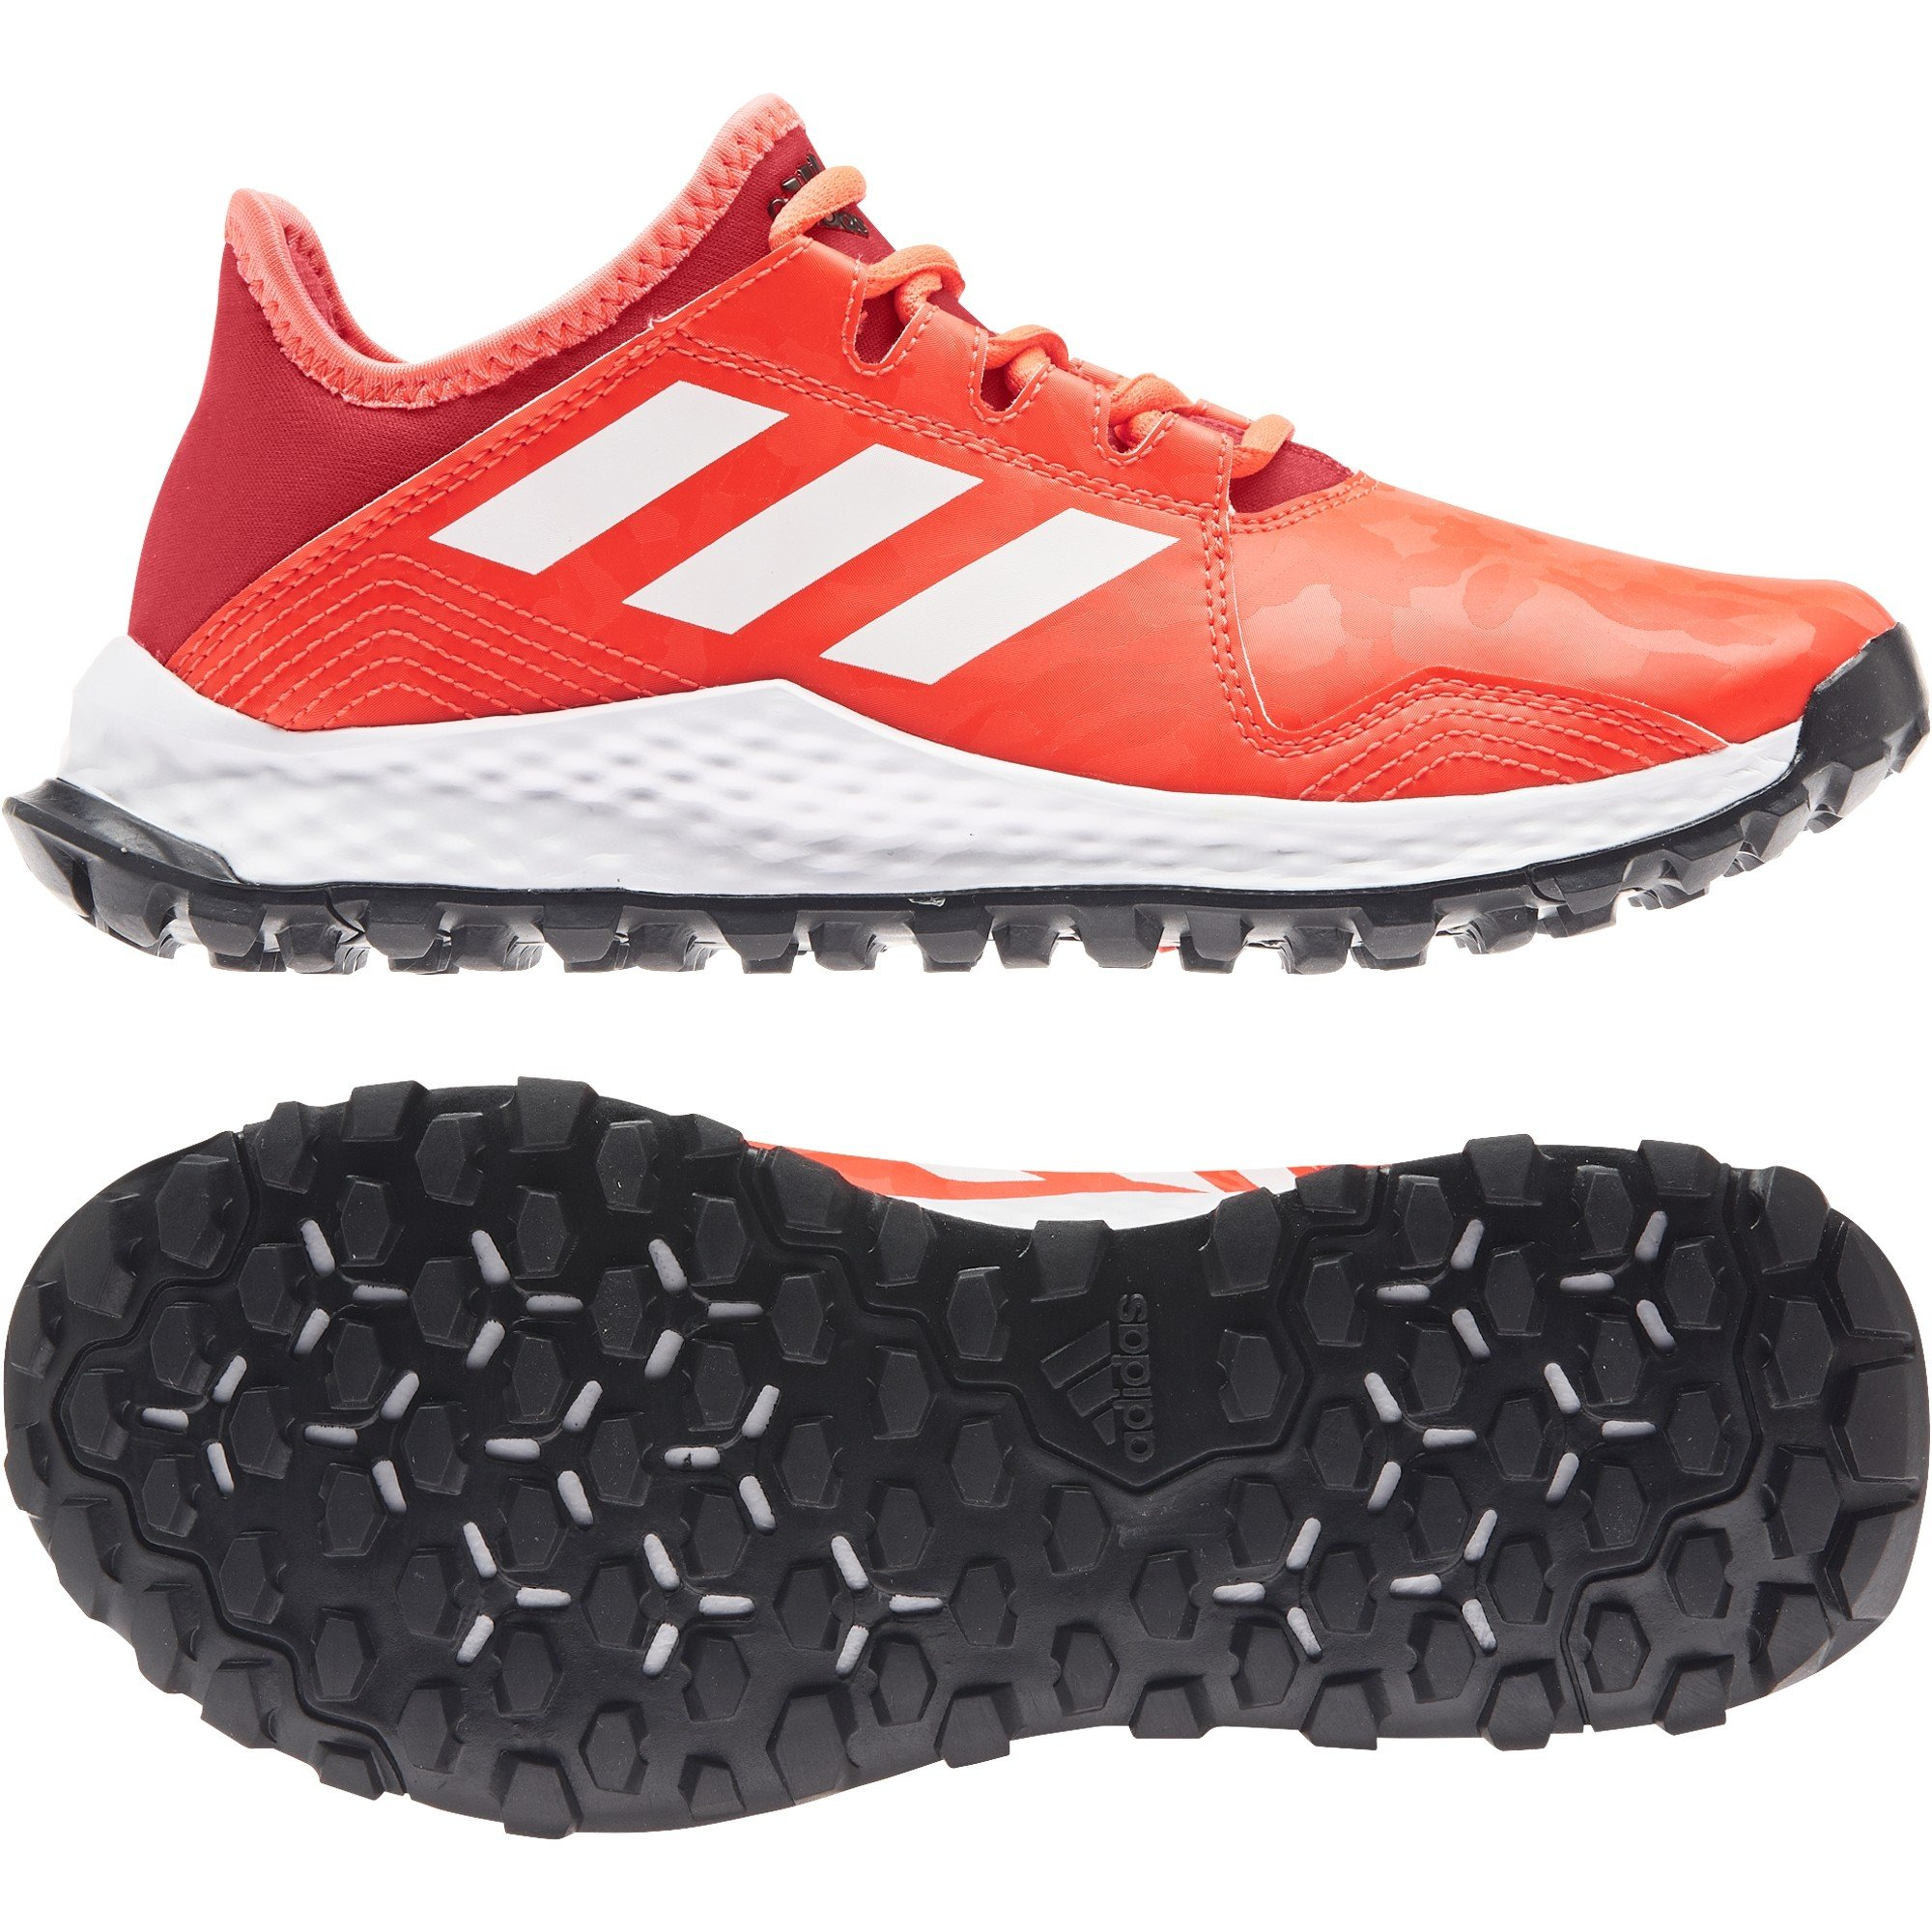 Adidas Youngstar Hockey Shoes - Red/White